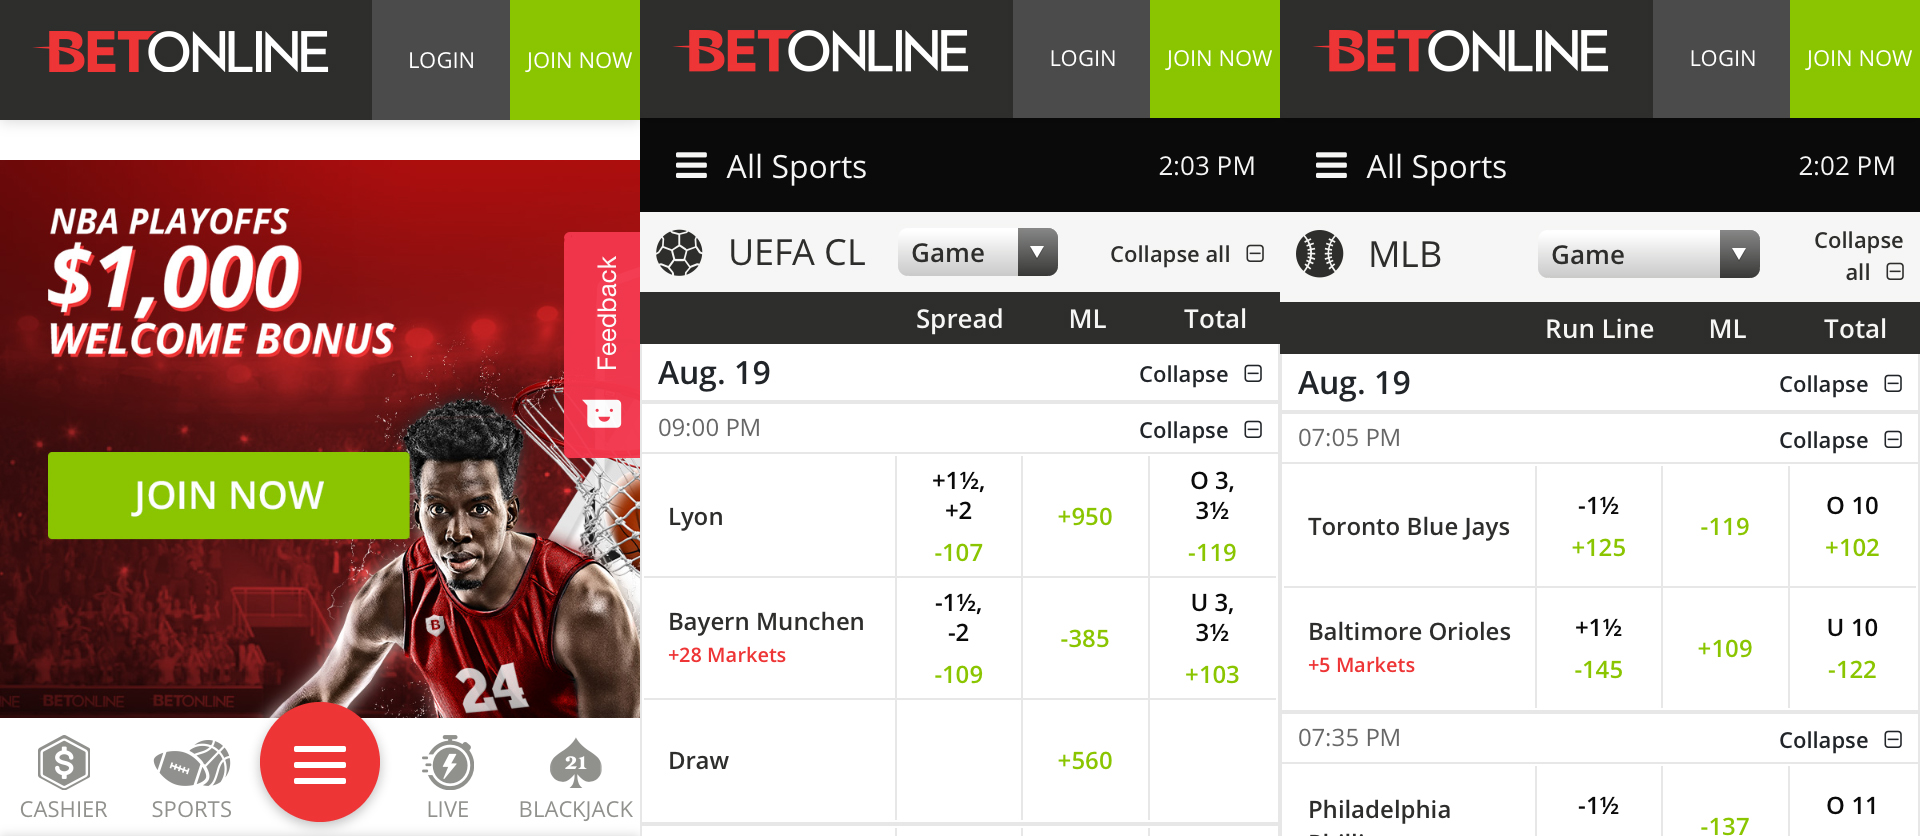 BetOnline sports betting app